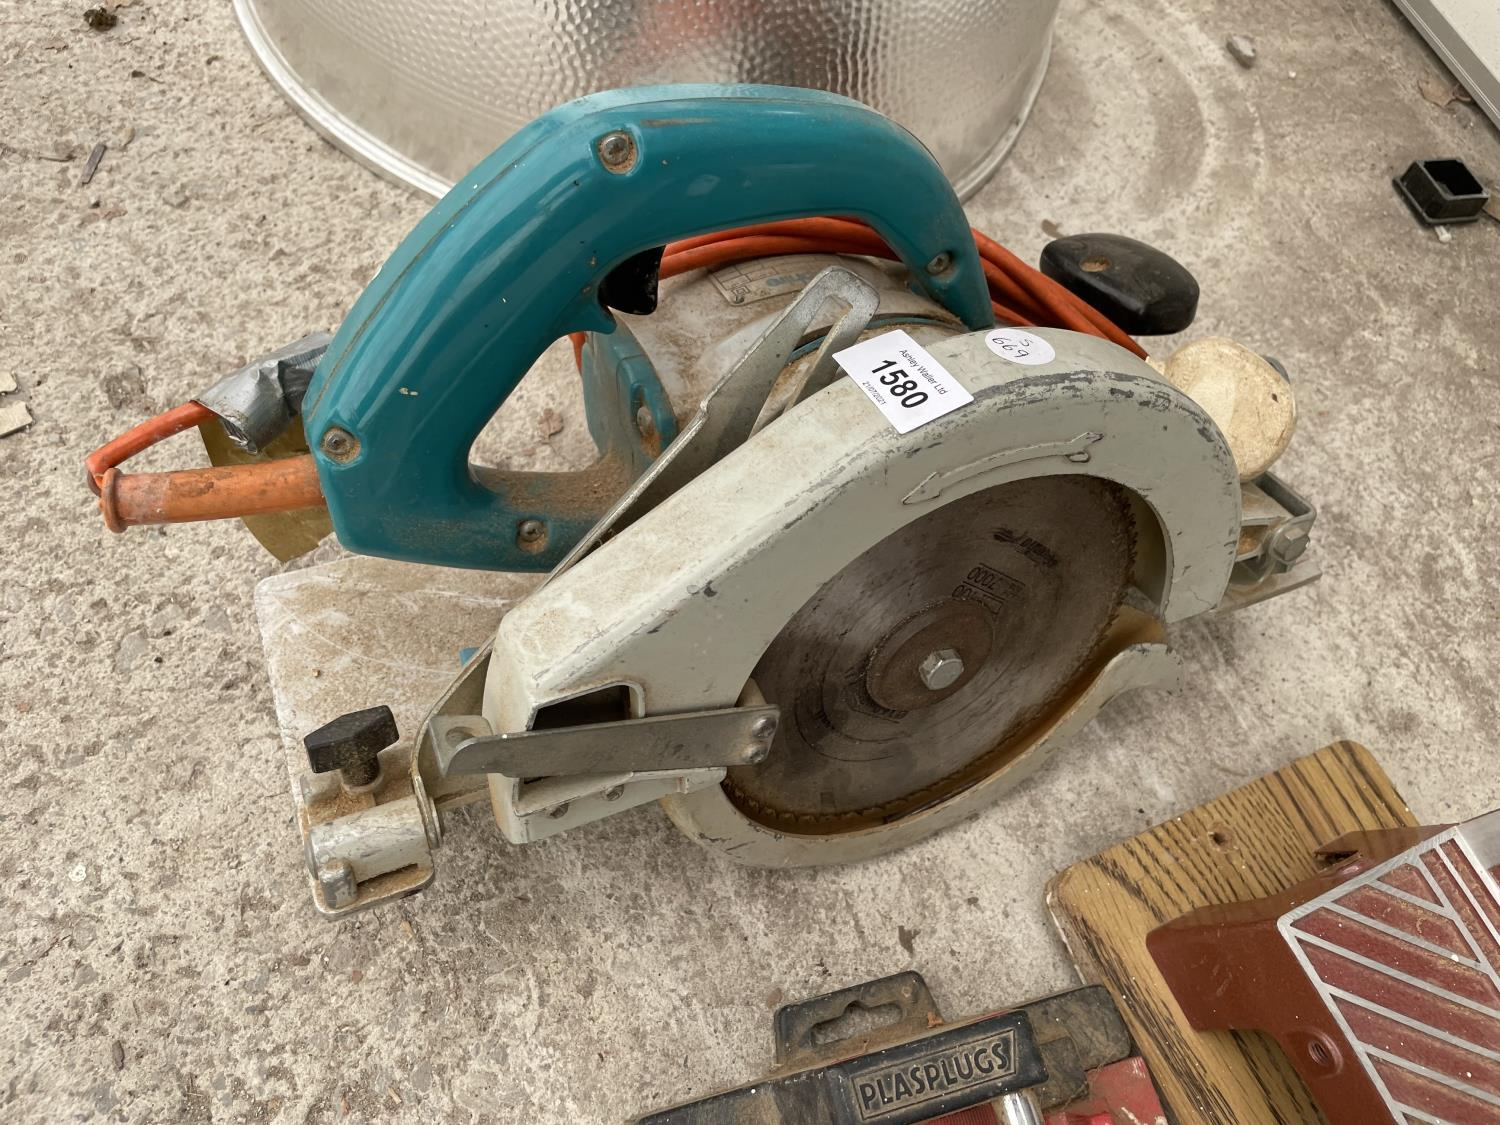 A WOLF CIRCULAR SAW AND TWO MITRE SAWS - Image 4 of 4